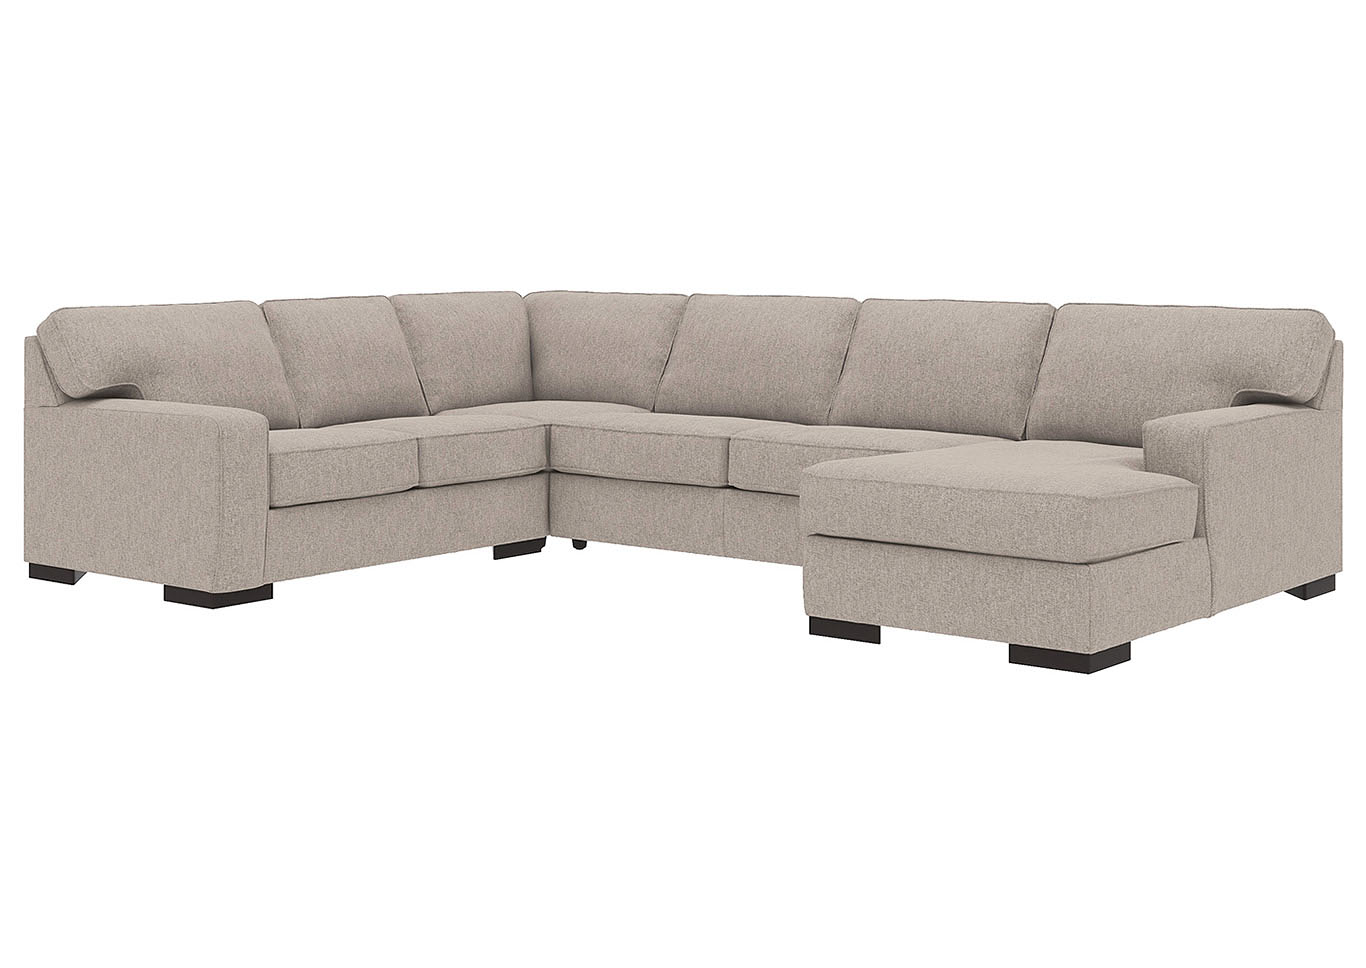 Ashlor Nuvella Slate RAF 4 Piece Chaise Sectional,Ashley